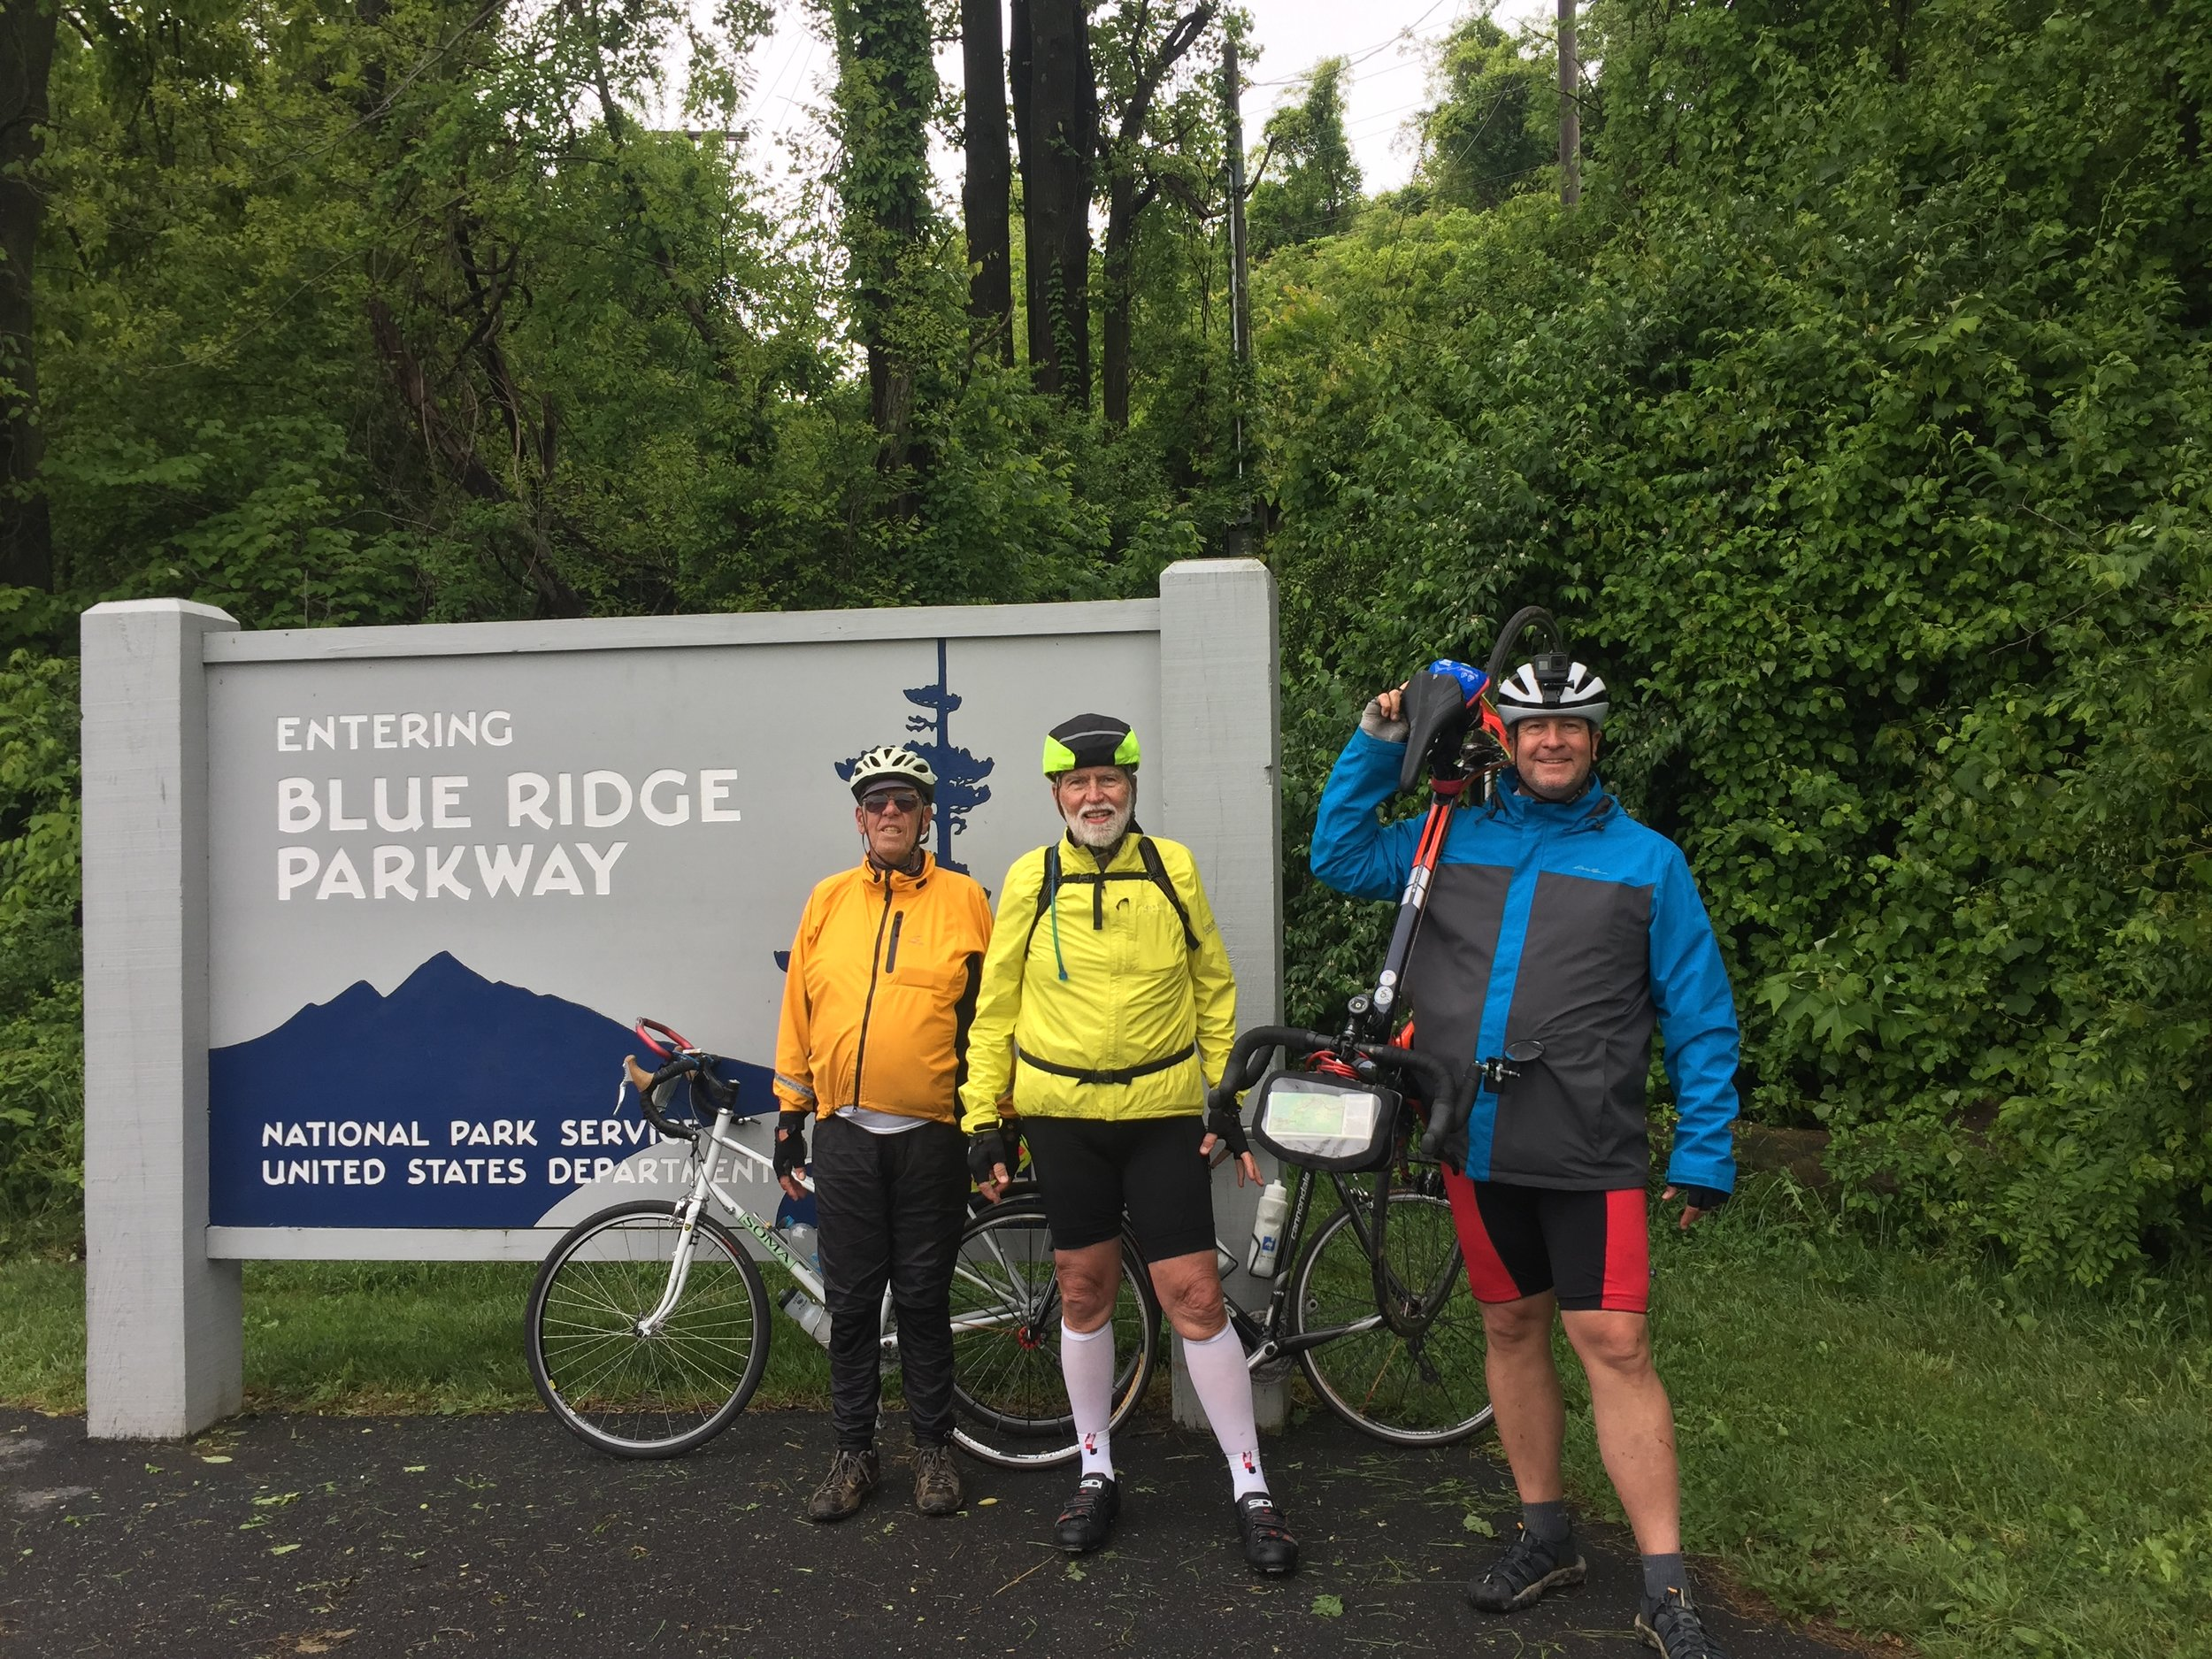 Blue Ridge Parkway. After going straight up forever we enter this famed roadway. I would like to think that from here it's just a nice winding flat path along the ridge but I am disappointed. (With Mike & Don)